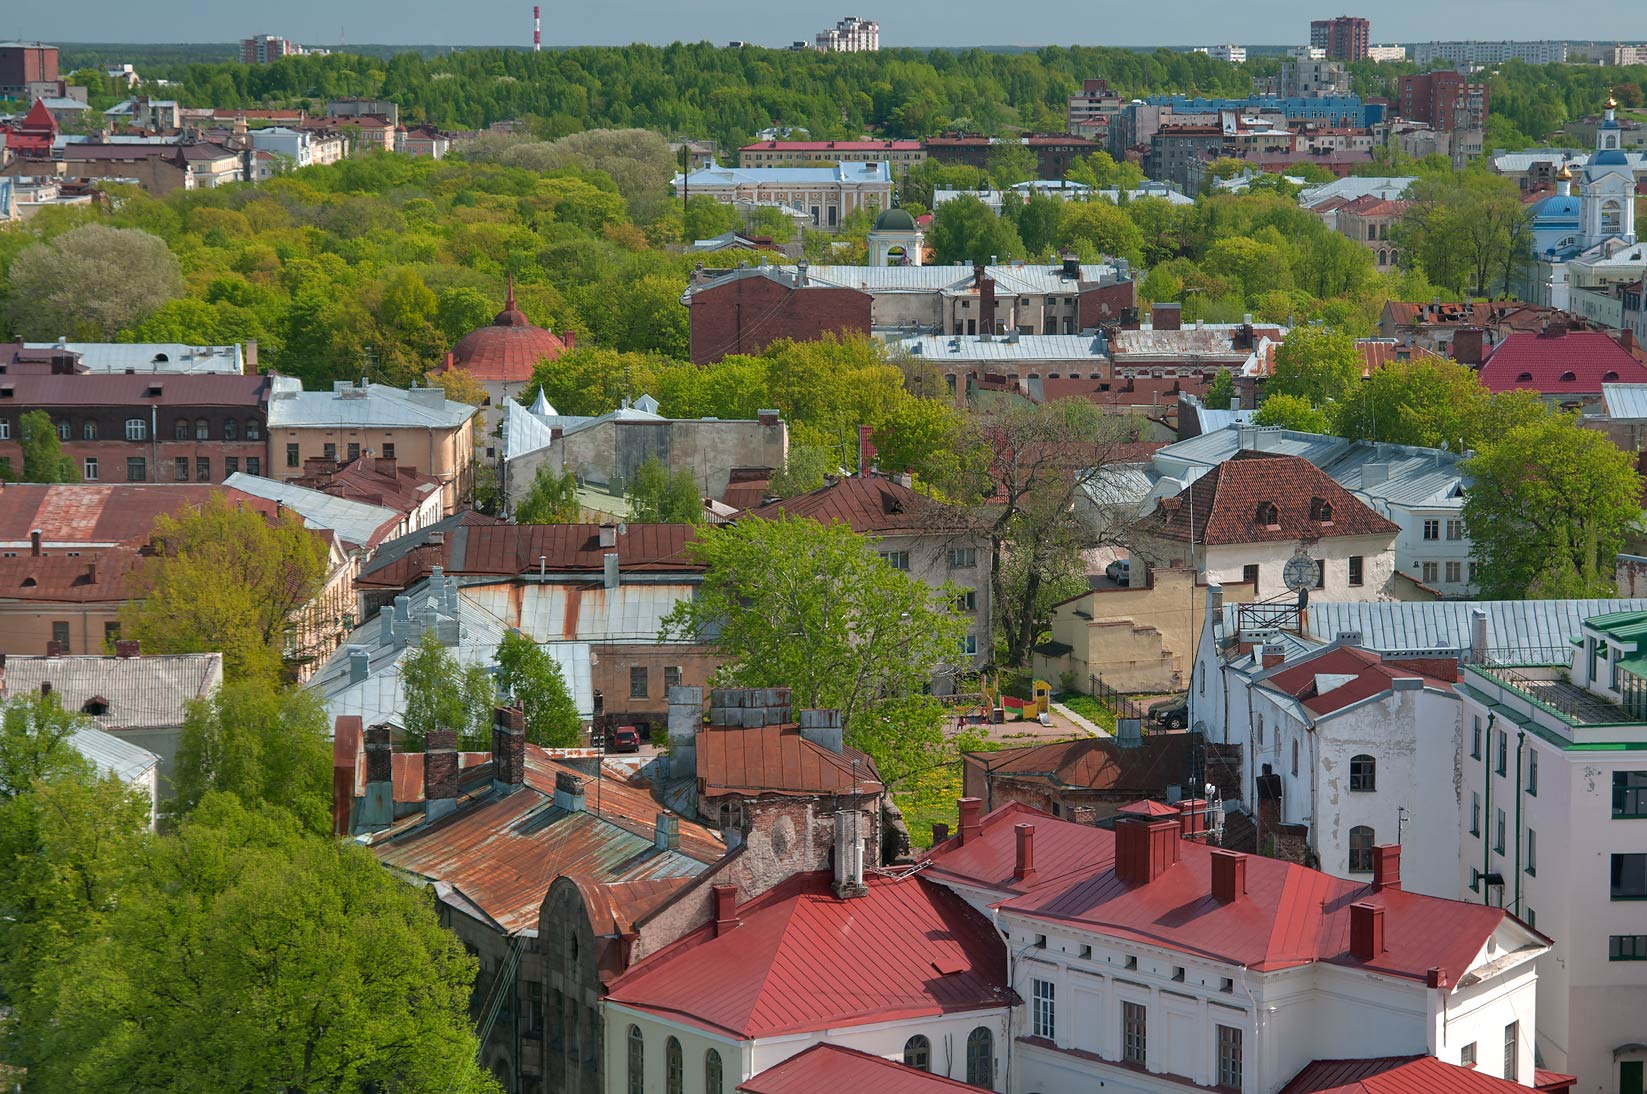 View of Old City from St.Olaf Tower of Vyborg Castle. Vyborg, Russia